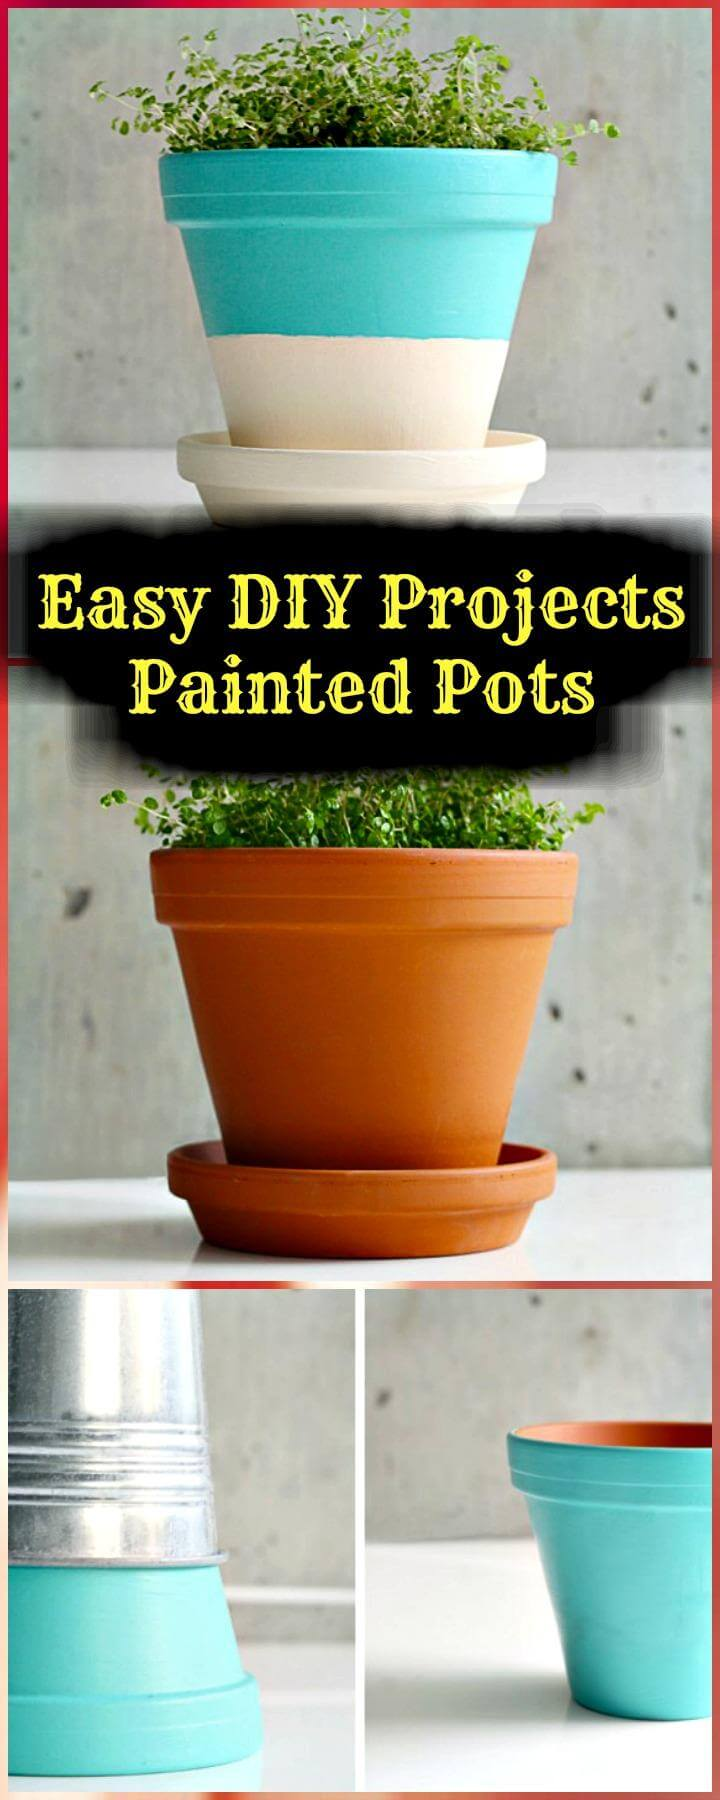 Easy DIY Projects Painted Pots